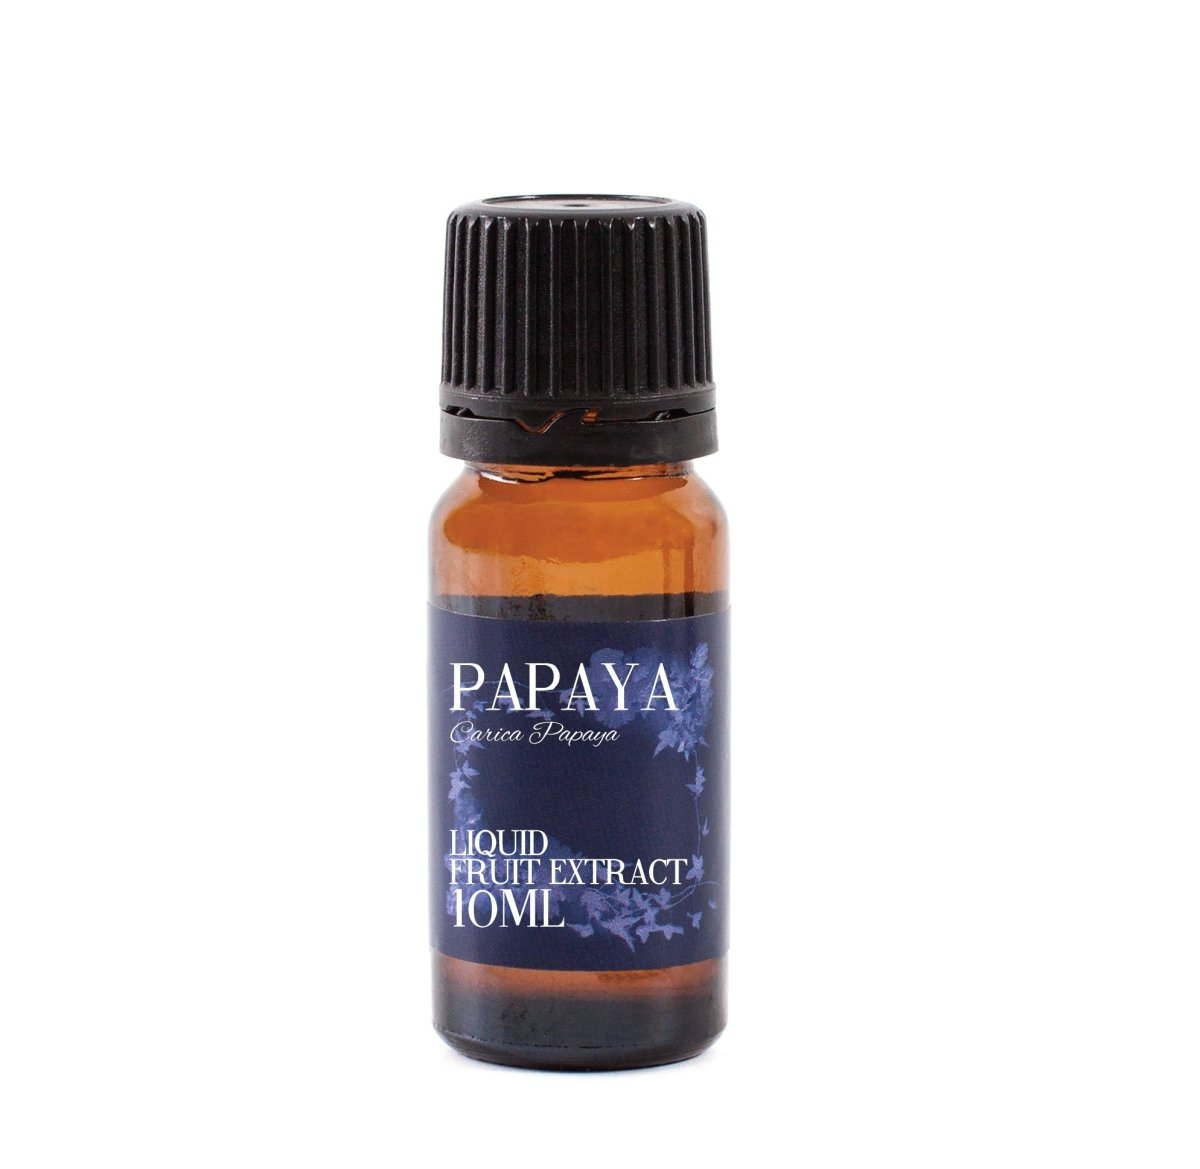 Papaya Liquid Fruit Extract - Mystic Moments UK